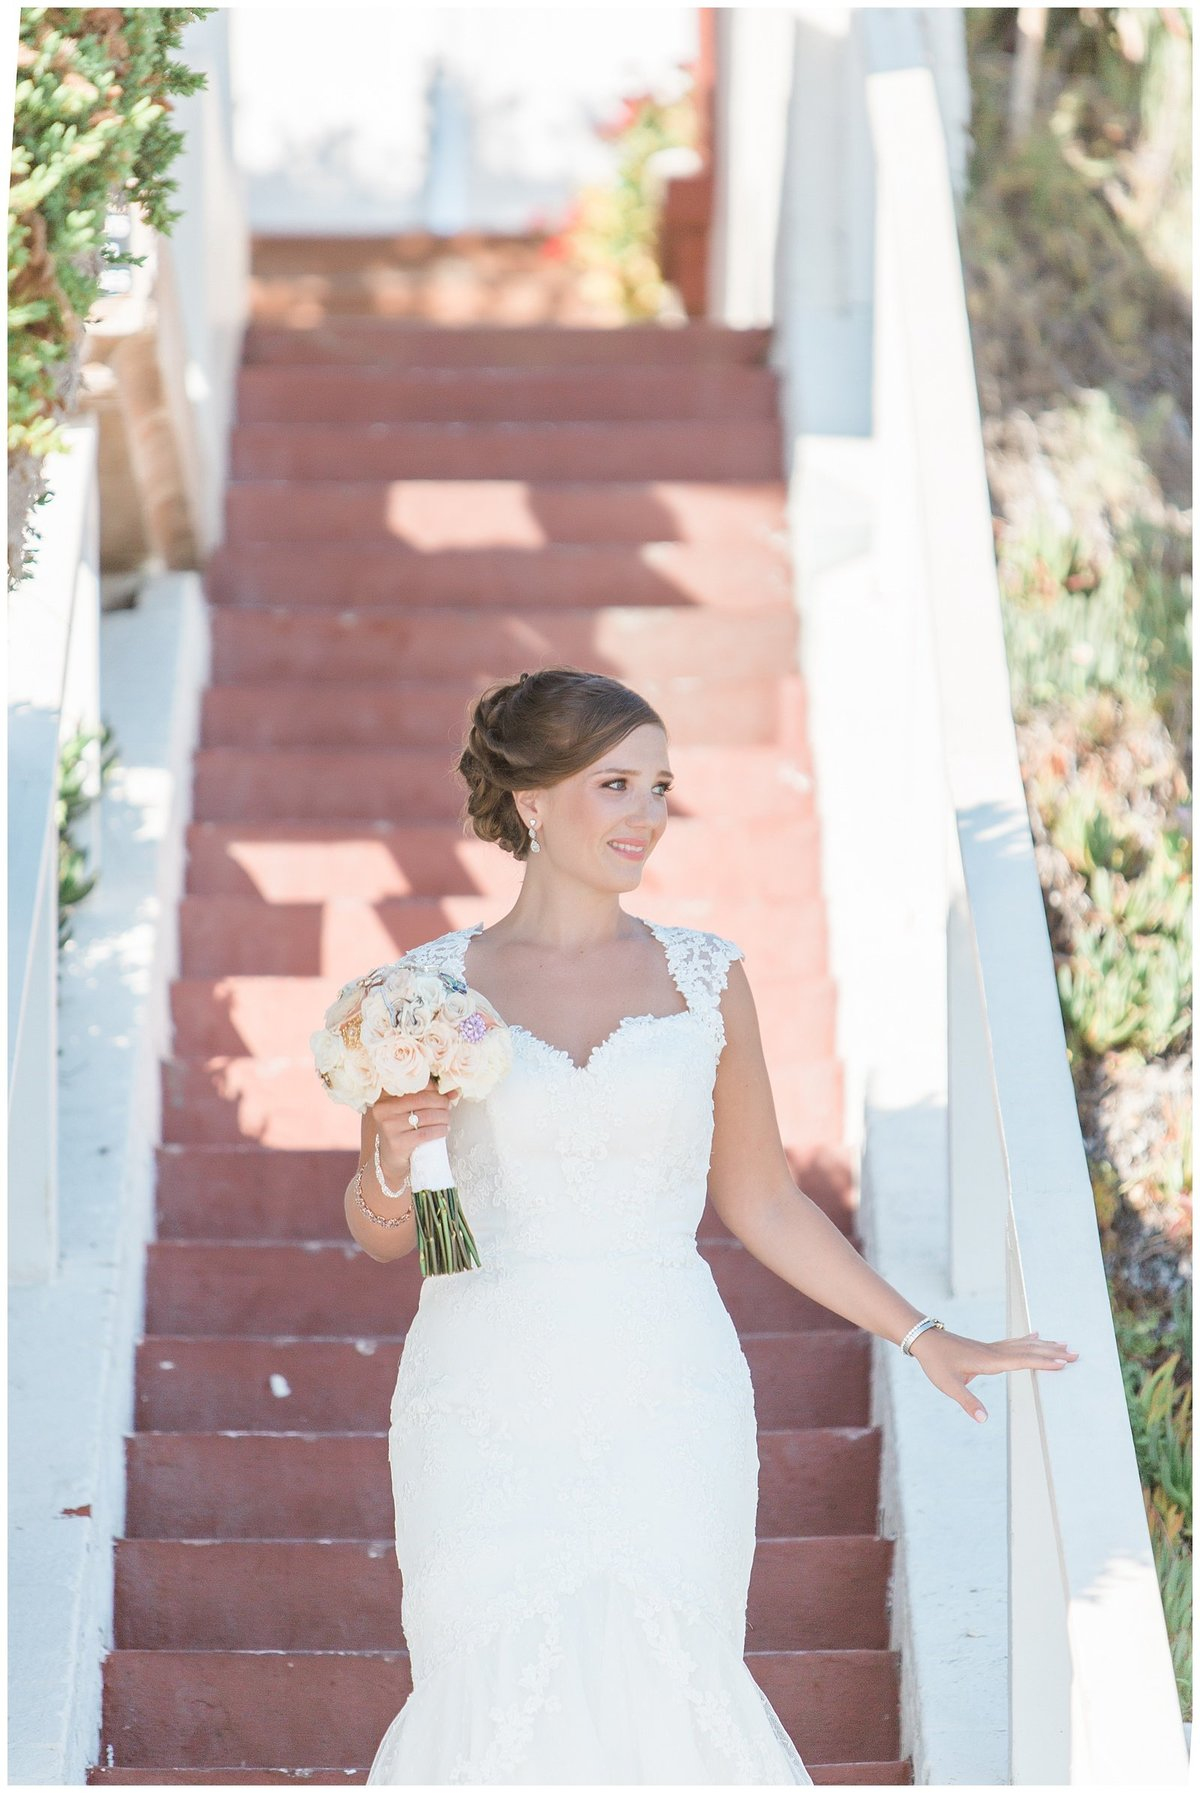 san diego beach wedding romantic light airy mermaid dress photos011